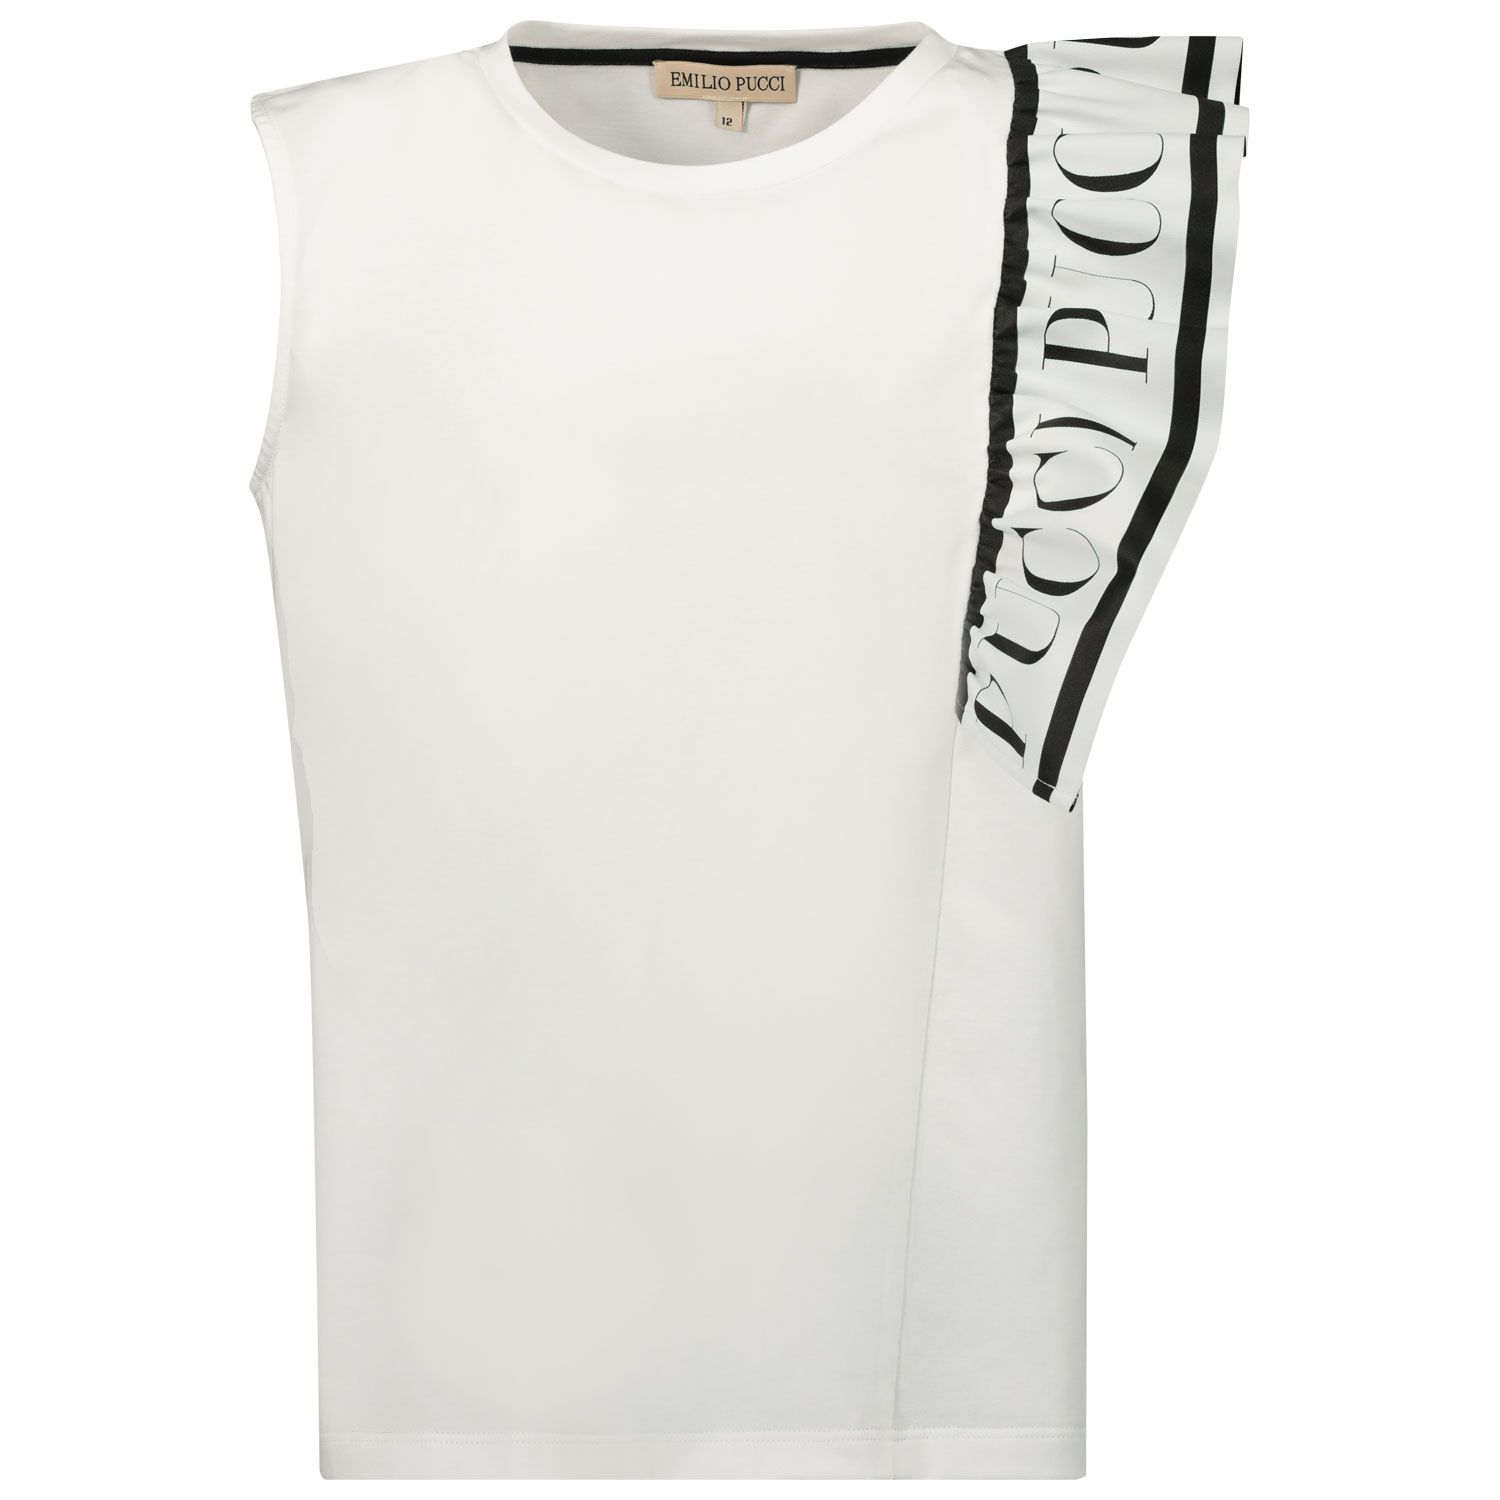 Picture of Pucci 9O8092 kids t-shirt white